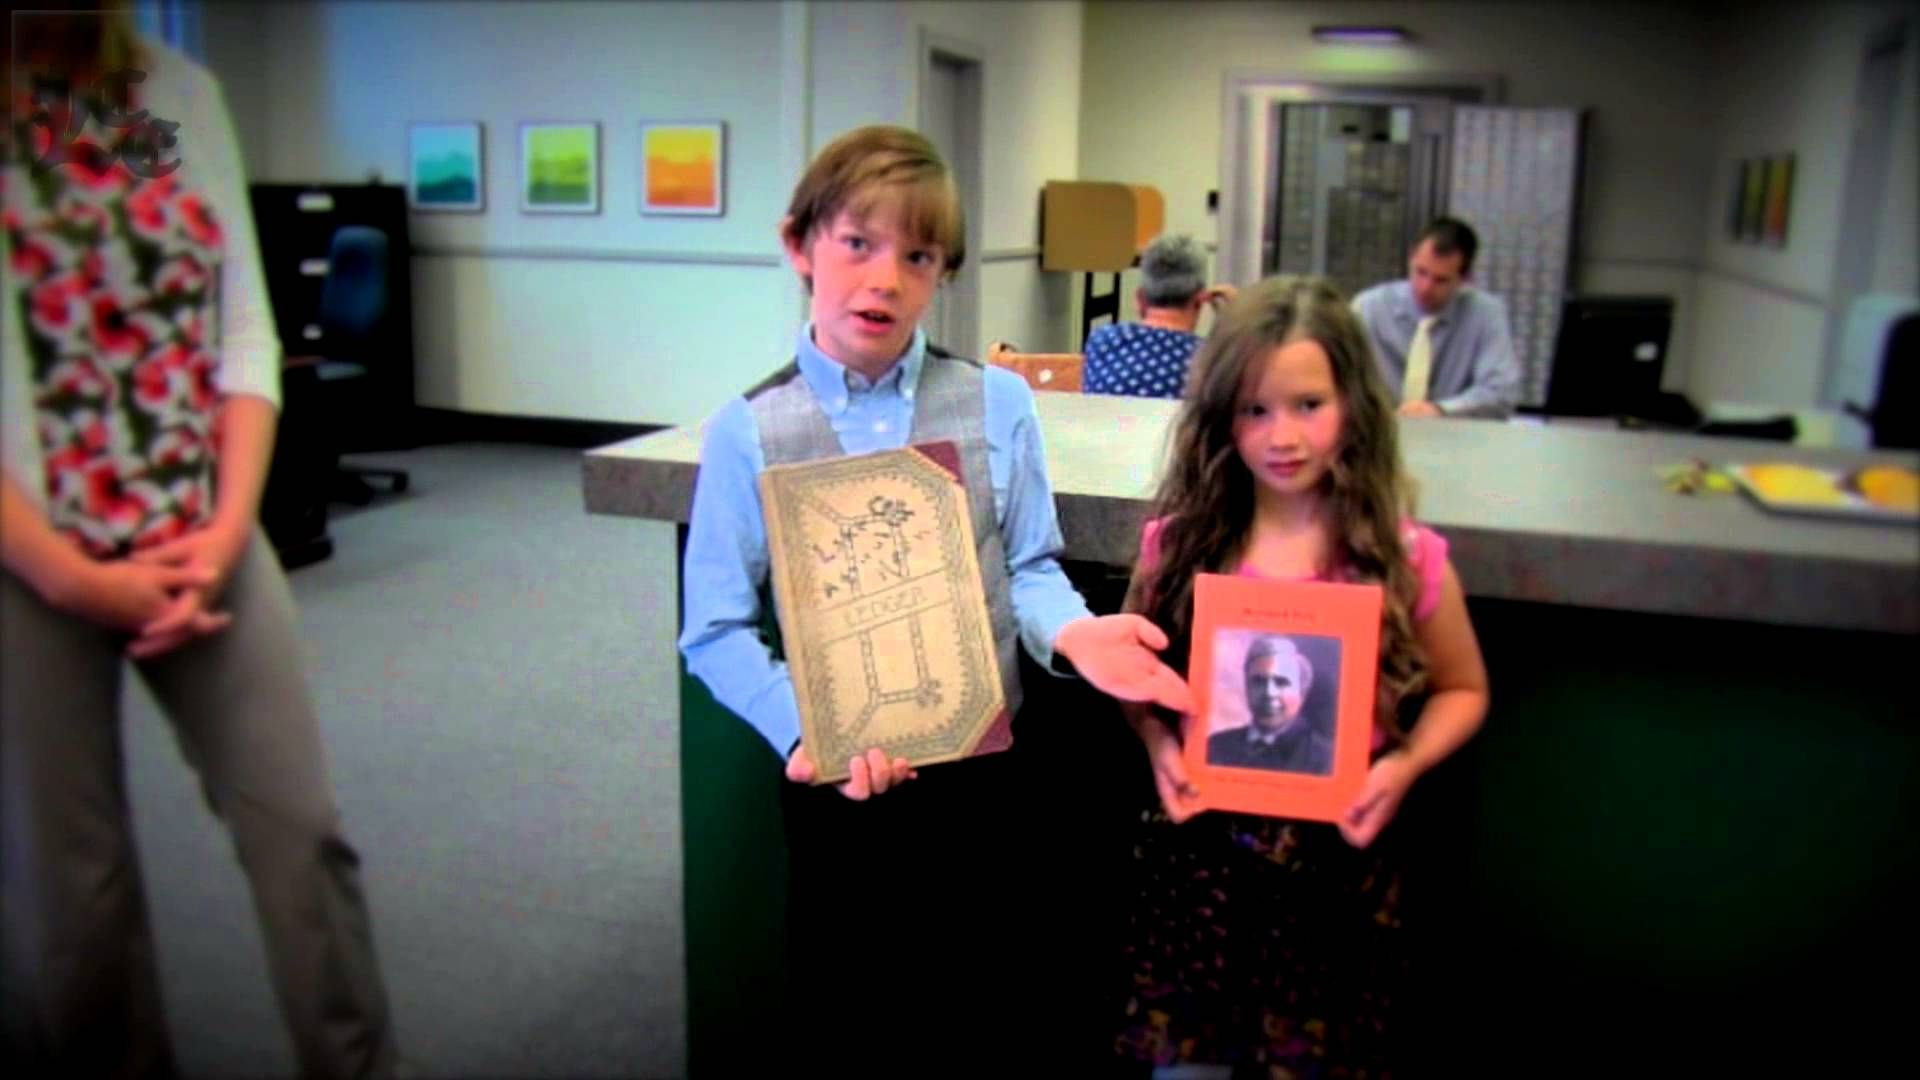 Lakeview kids discover historic Daly Bank ledgers 725